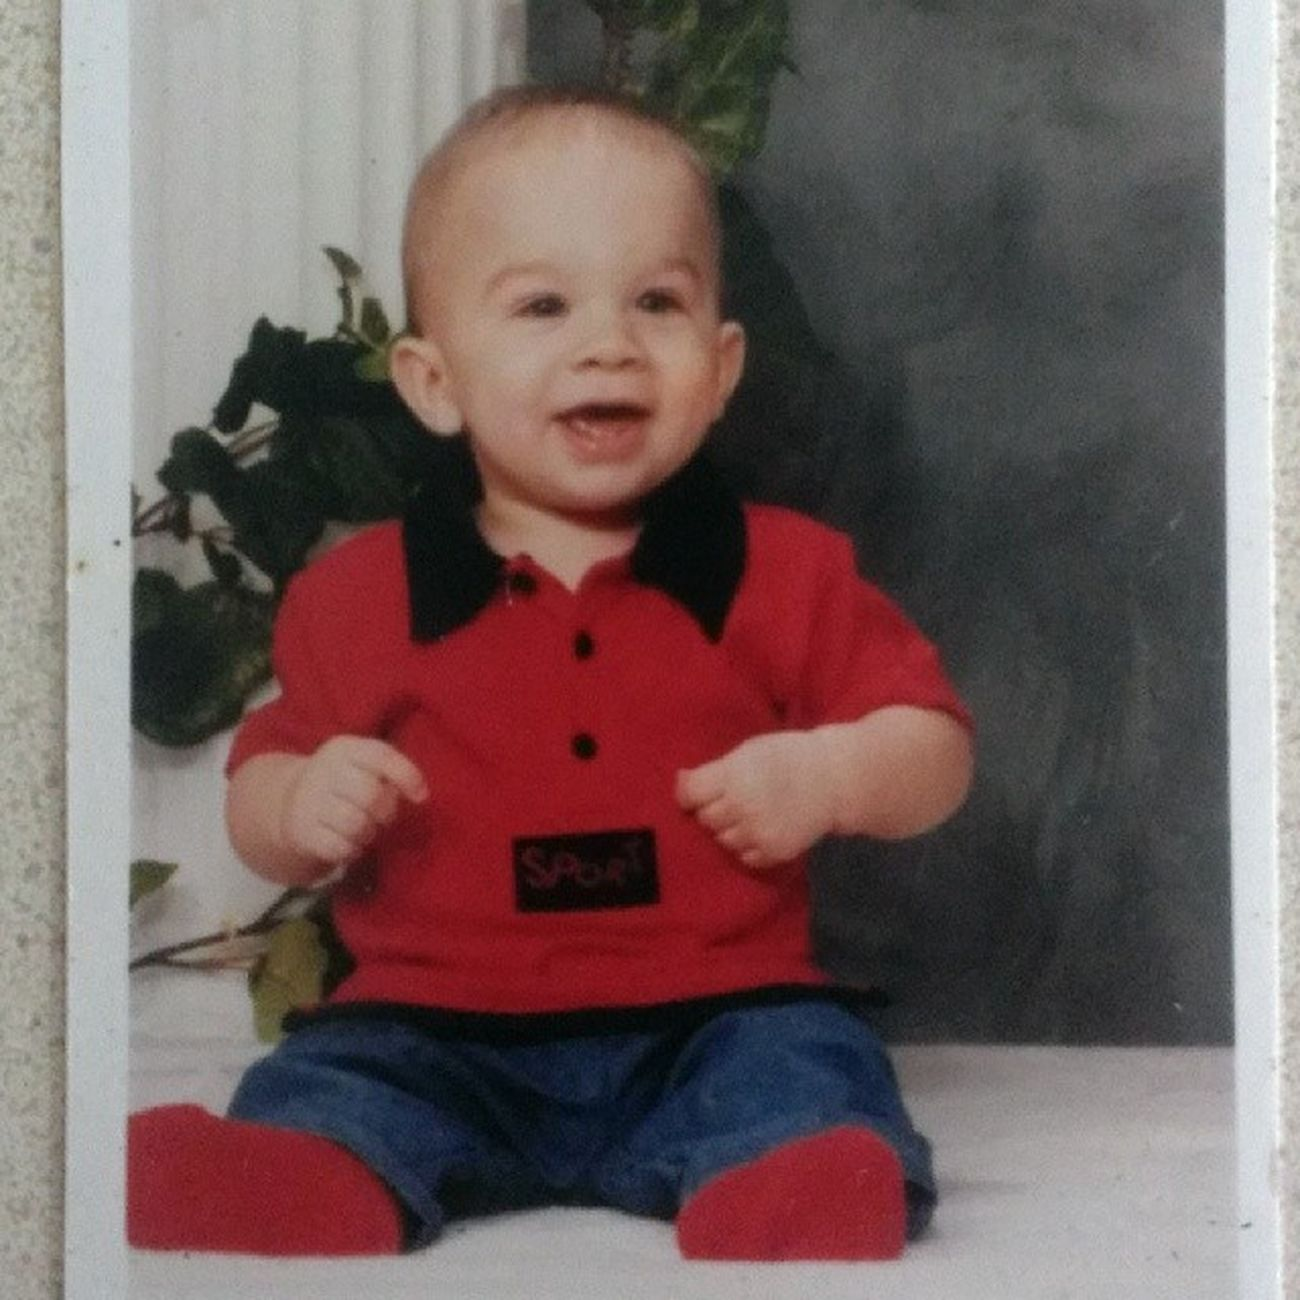 Flashback Friday to when I was a cute little baby. What happened to me? .__. FBF  Baby Babypicture Thisismyfavorite iusedtobecute wishiwasstillcute